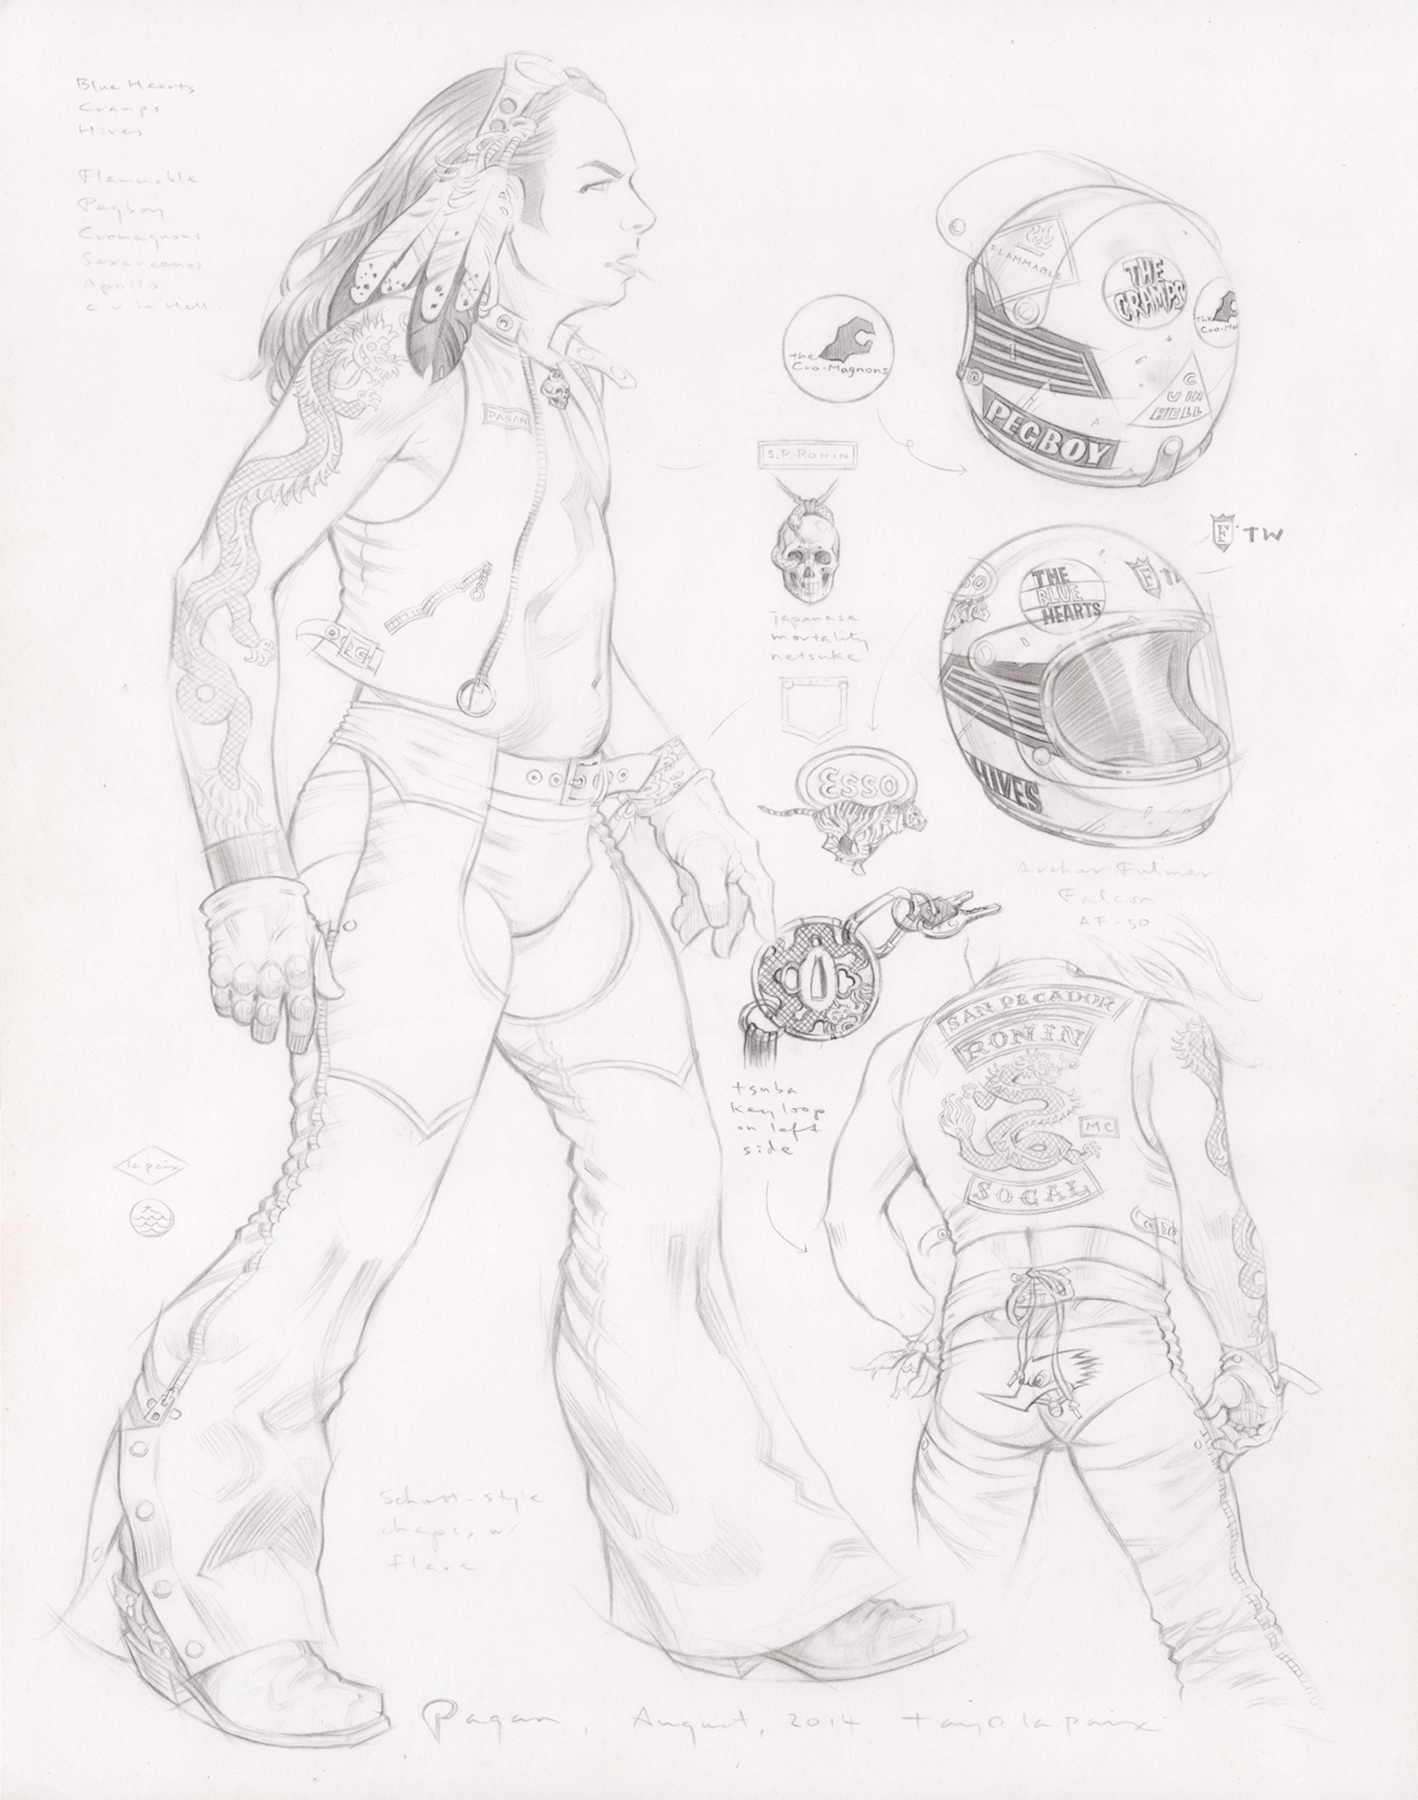 Pagan, 2014, pencil on paper, 14 x 11 inches